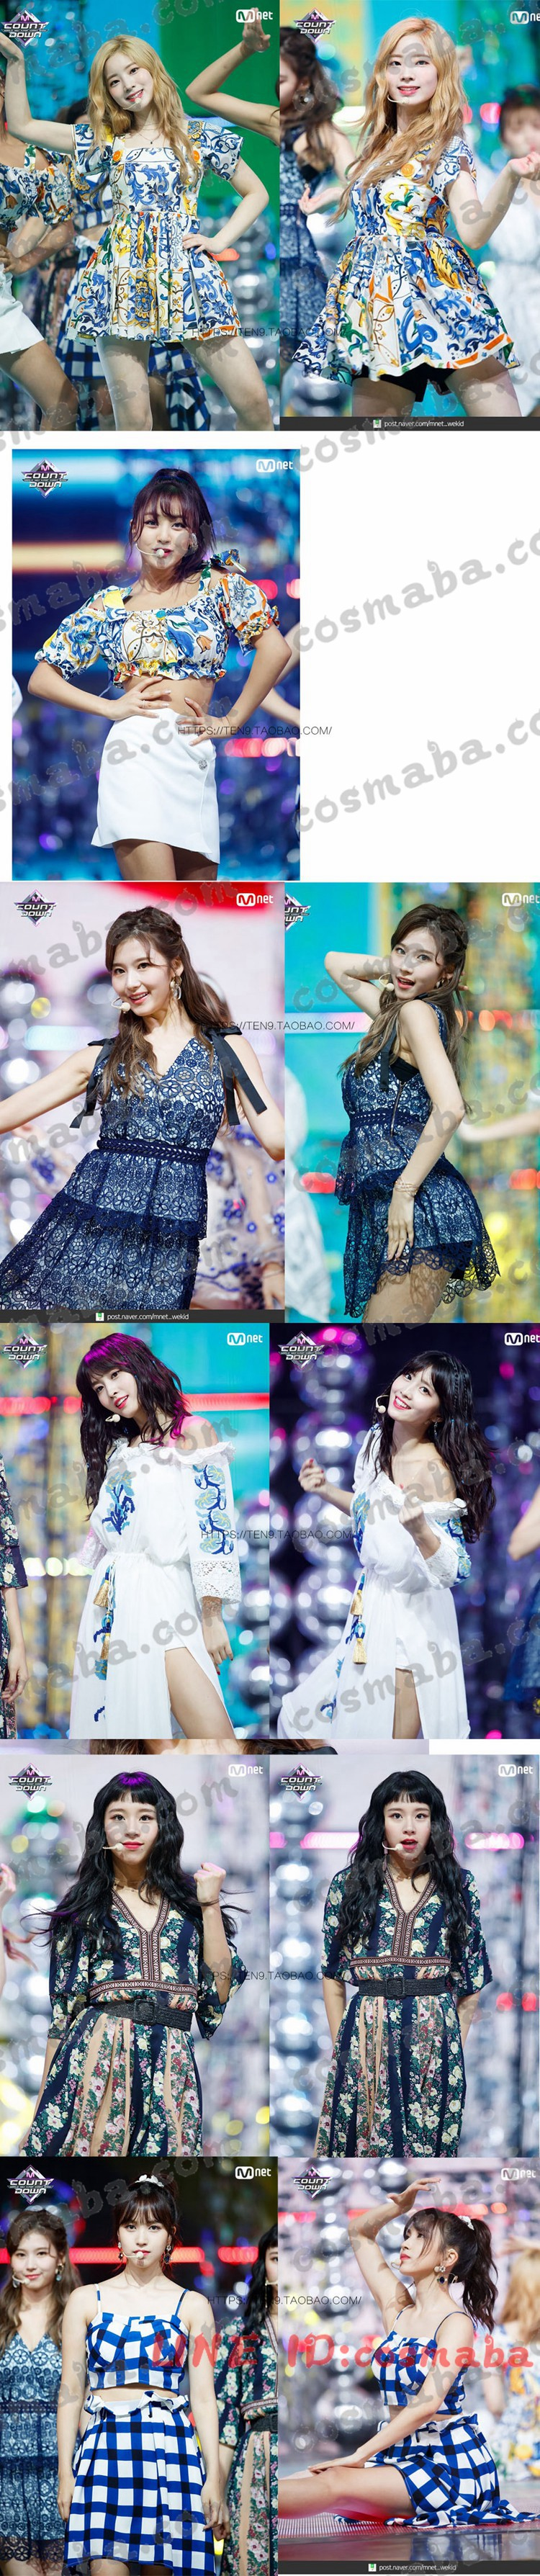 Twice Dance The Night Away fancy you TT 服 ナヨン ミナ 服 応援服 通販 グッズ